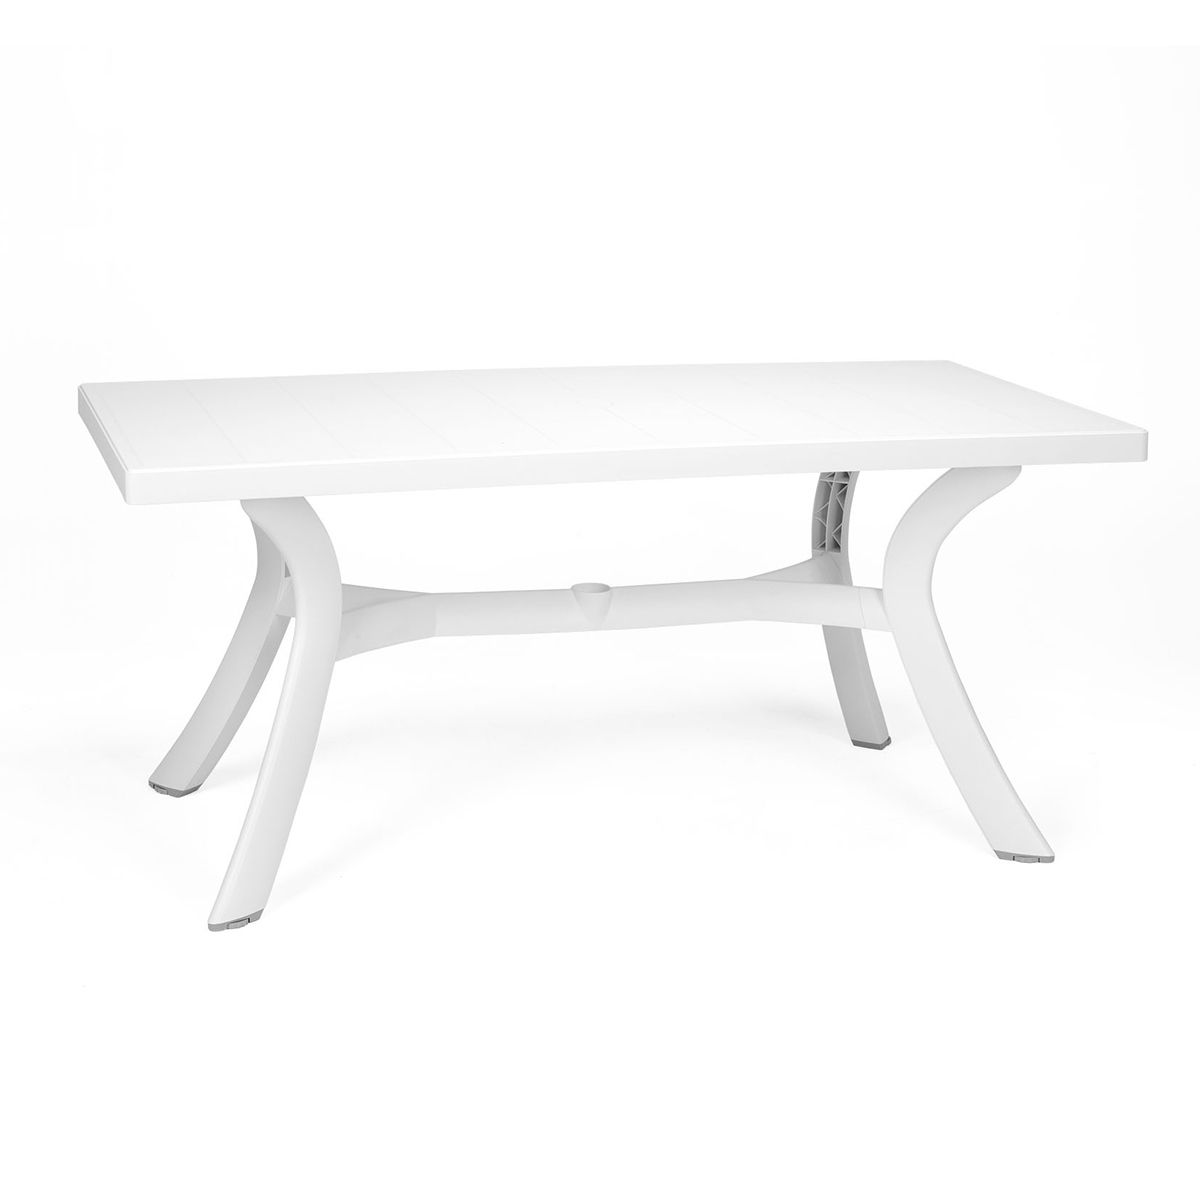 Table jardin plastique NARDI Toscana 160 - Zendart Design